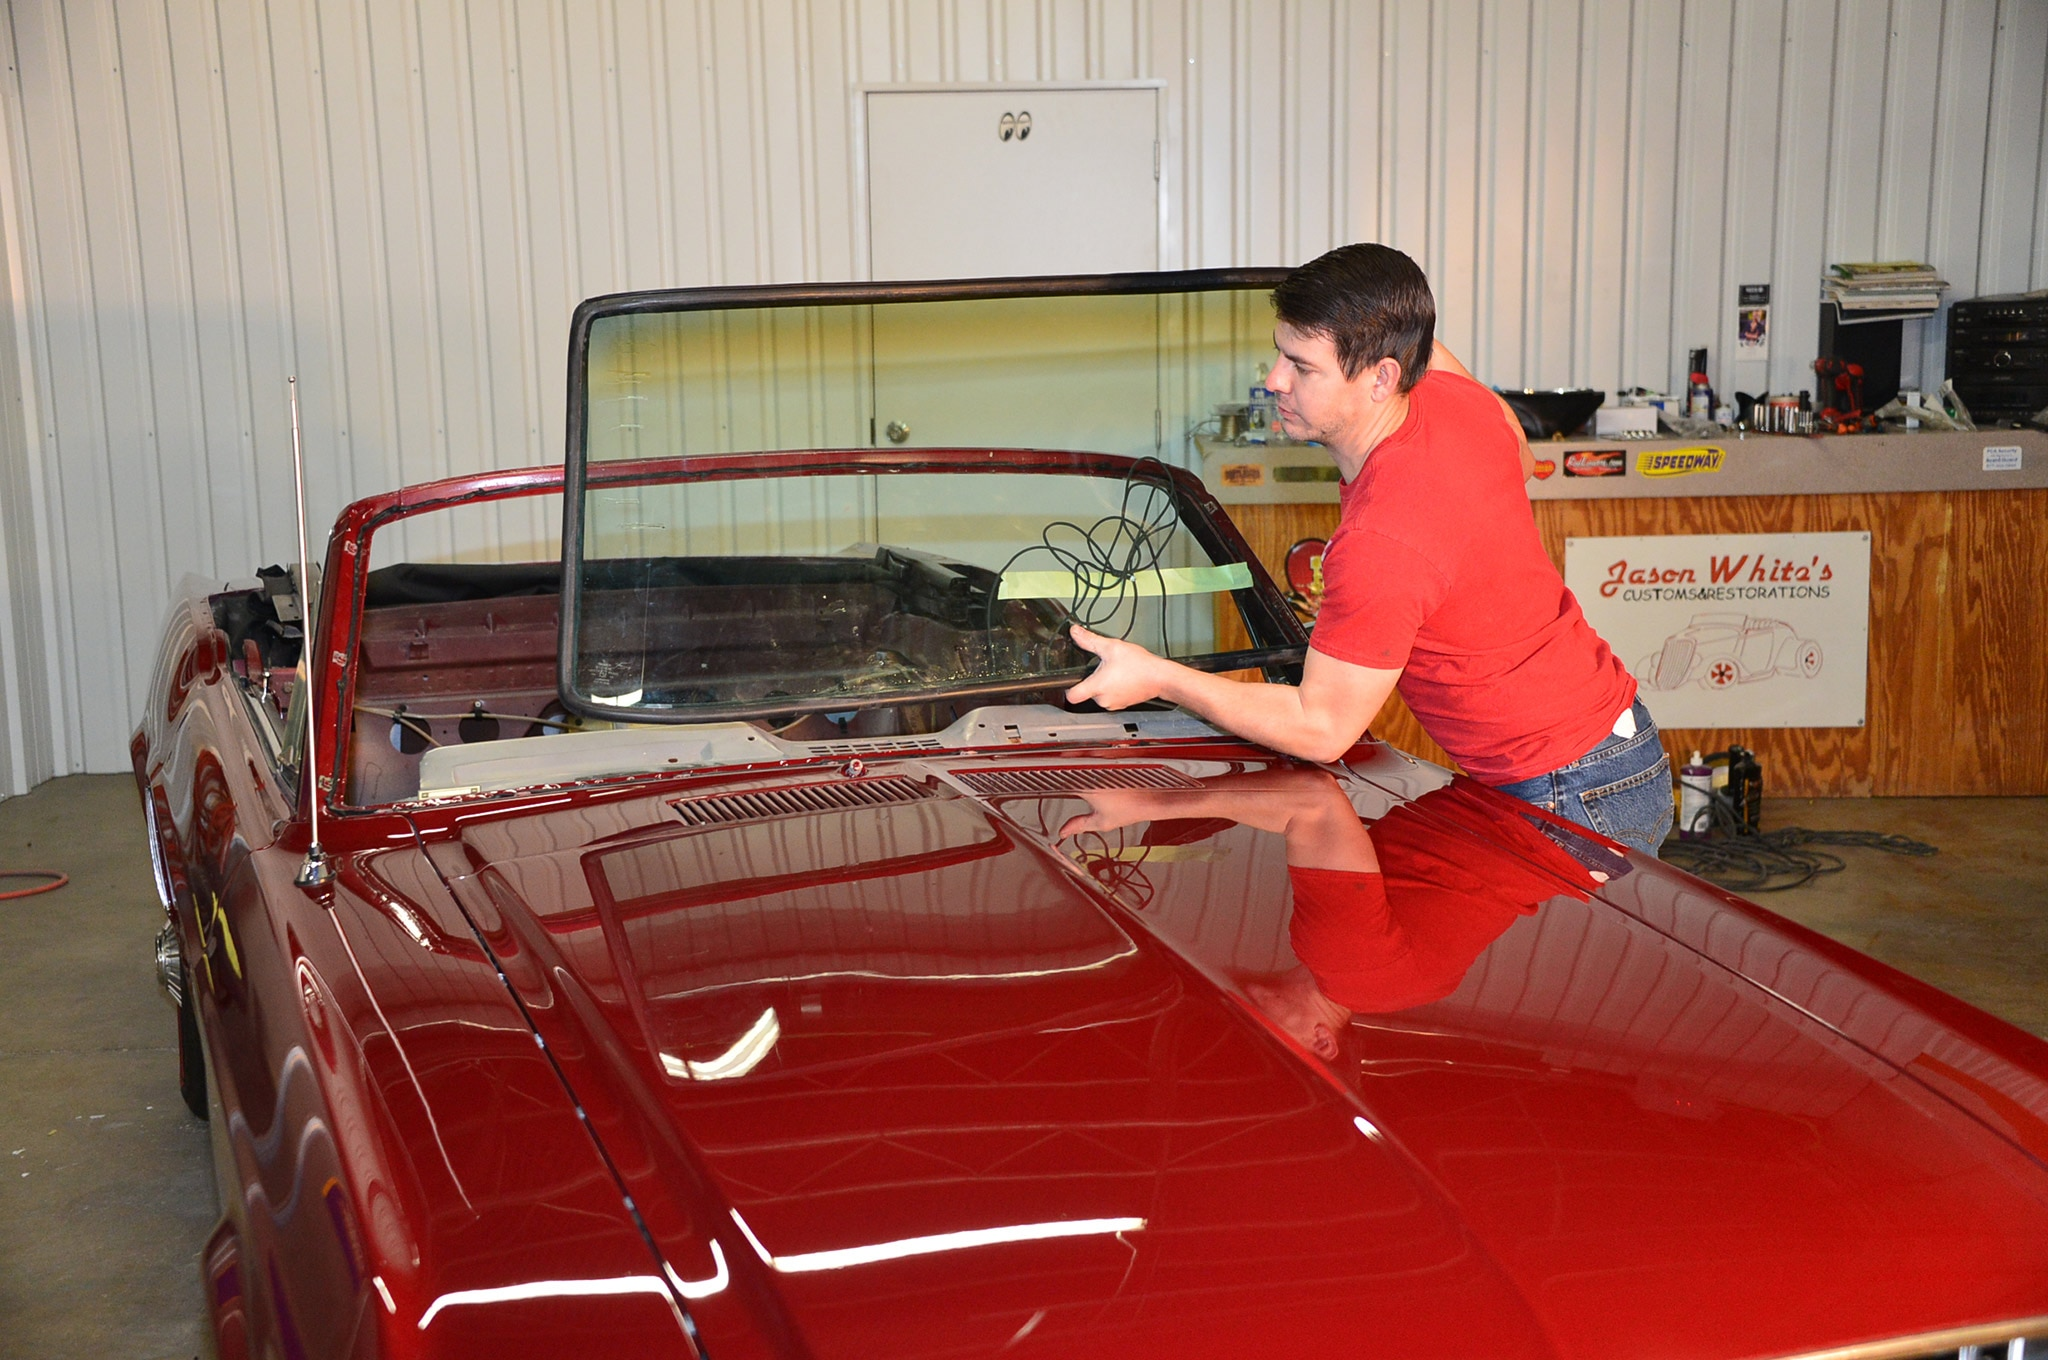 1968 Ford Mustang Convertible Project Windshield Install 09 Setting